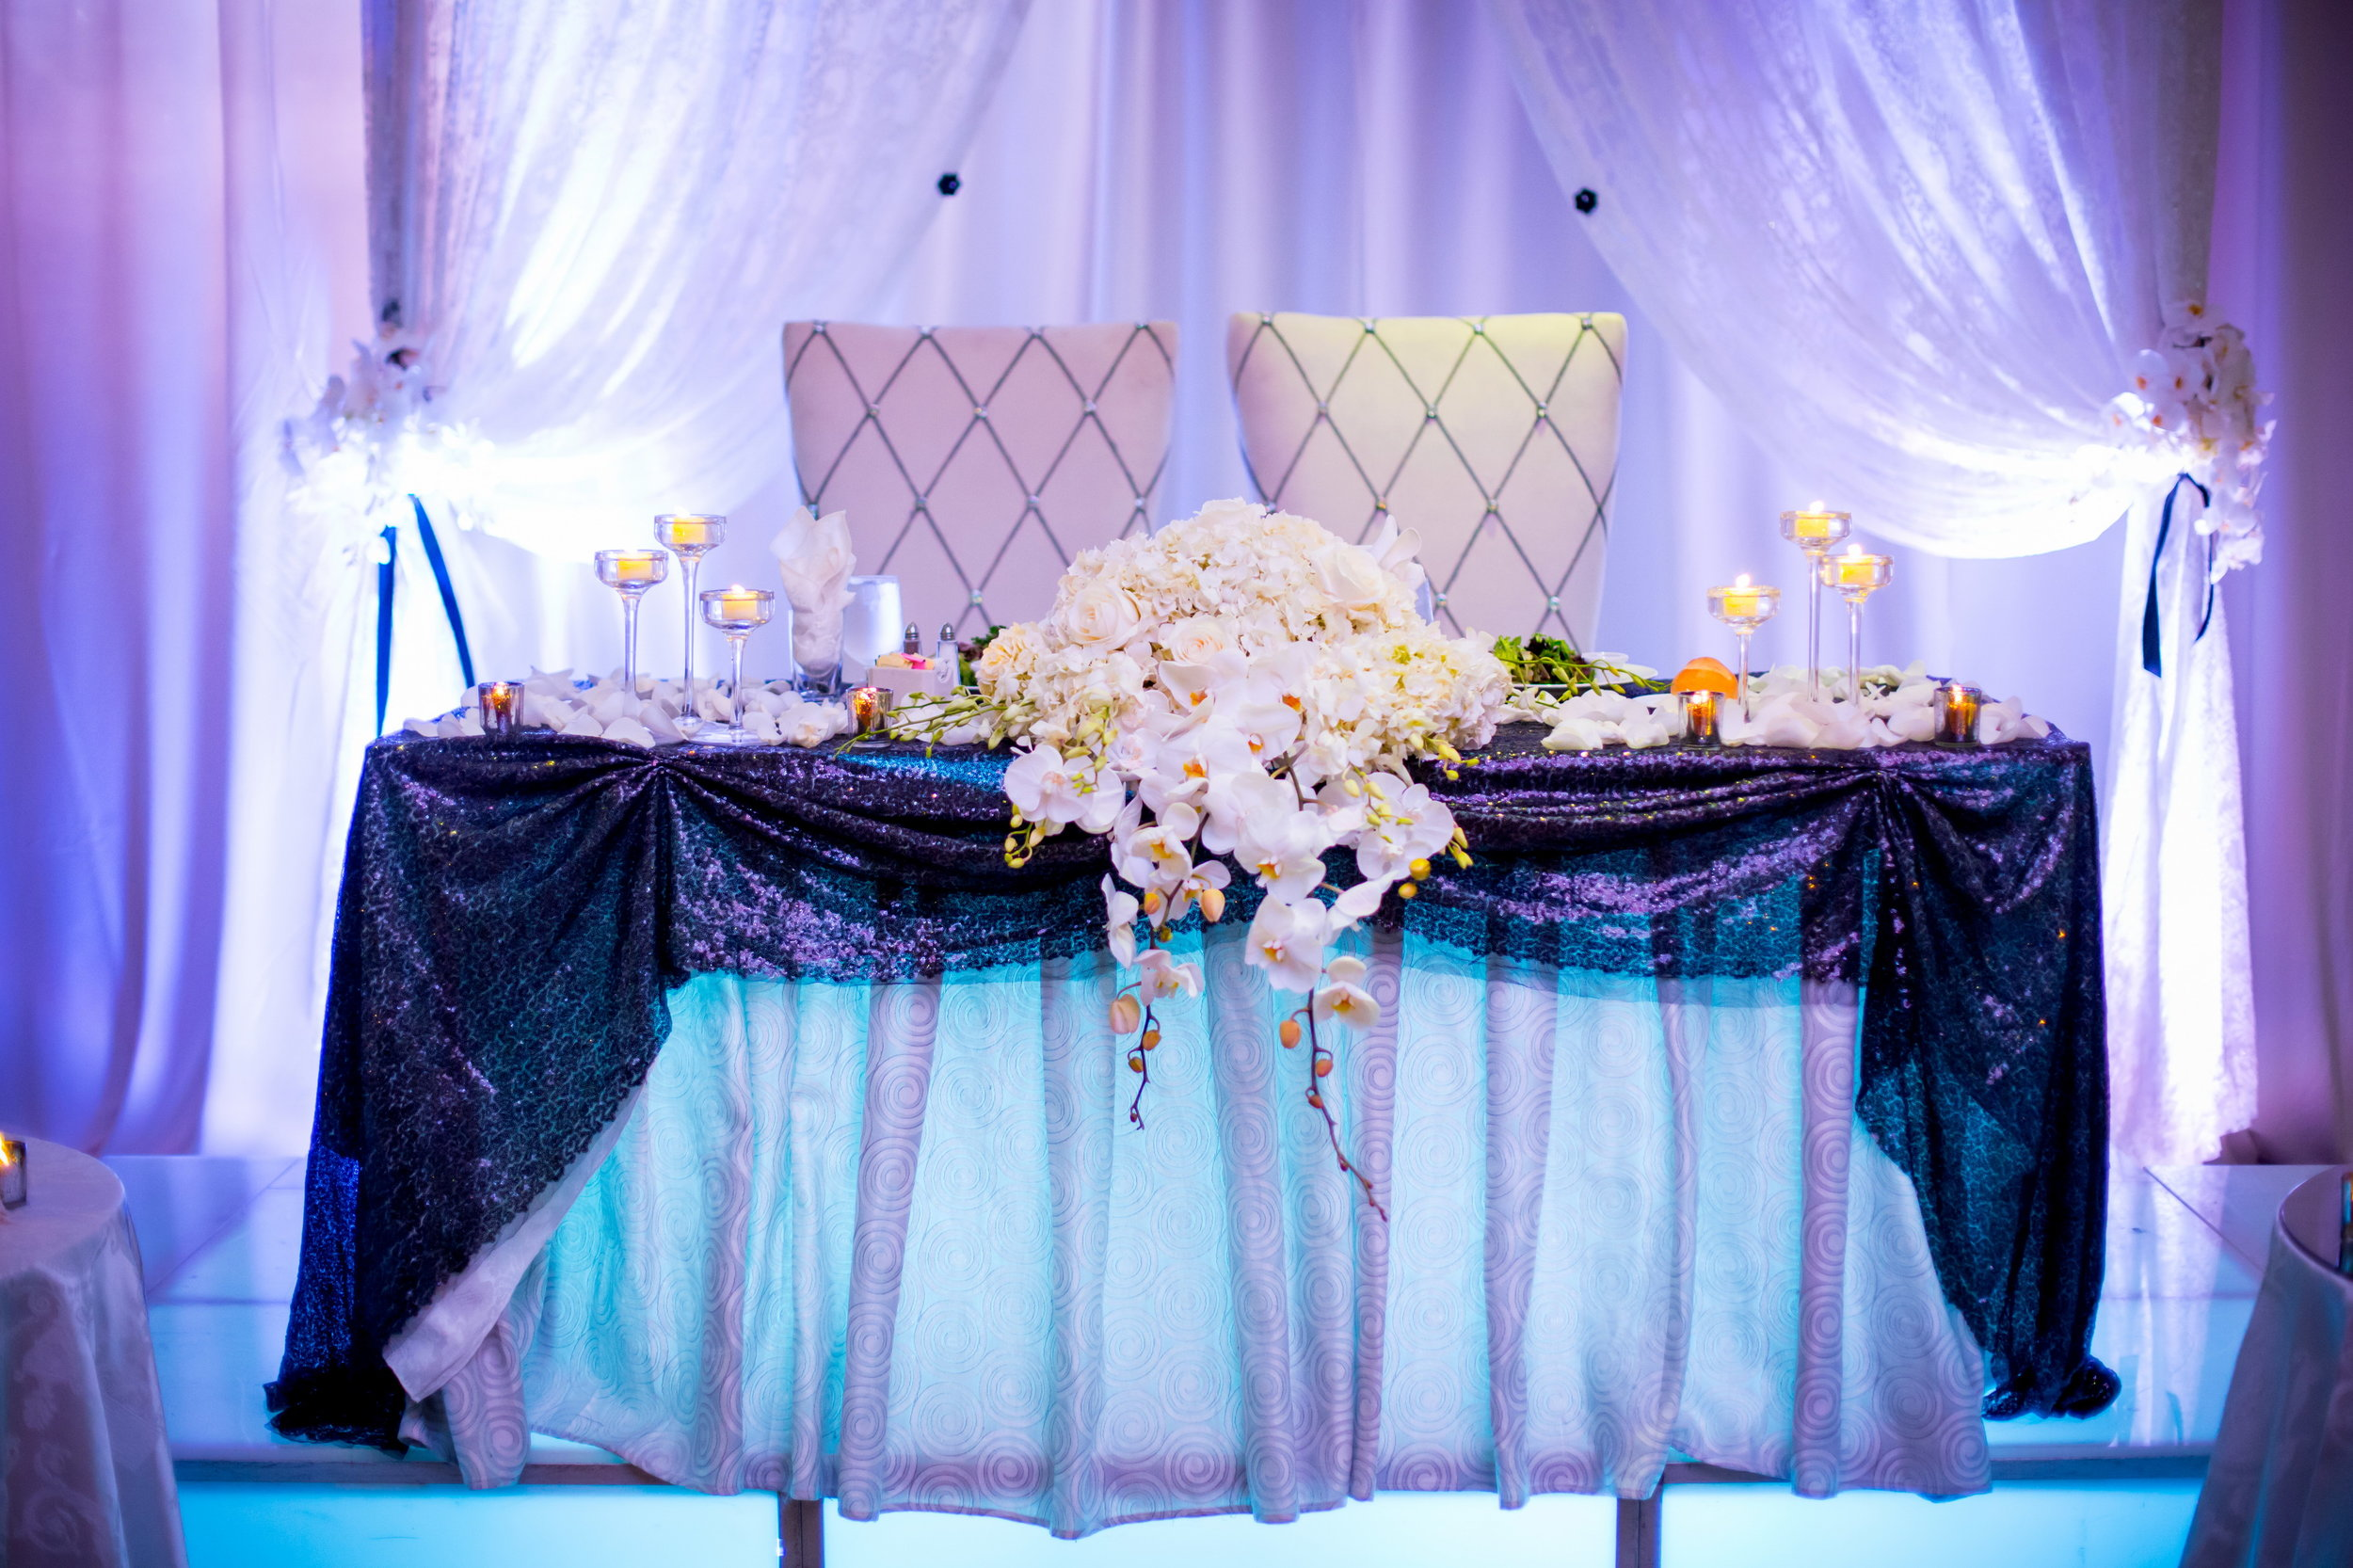 Black and White Wedding Sweetheart Table at Cresthollow Country Club